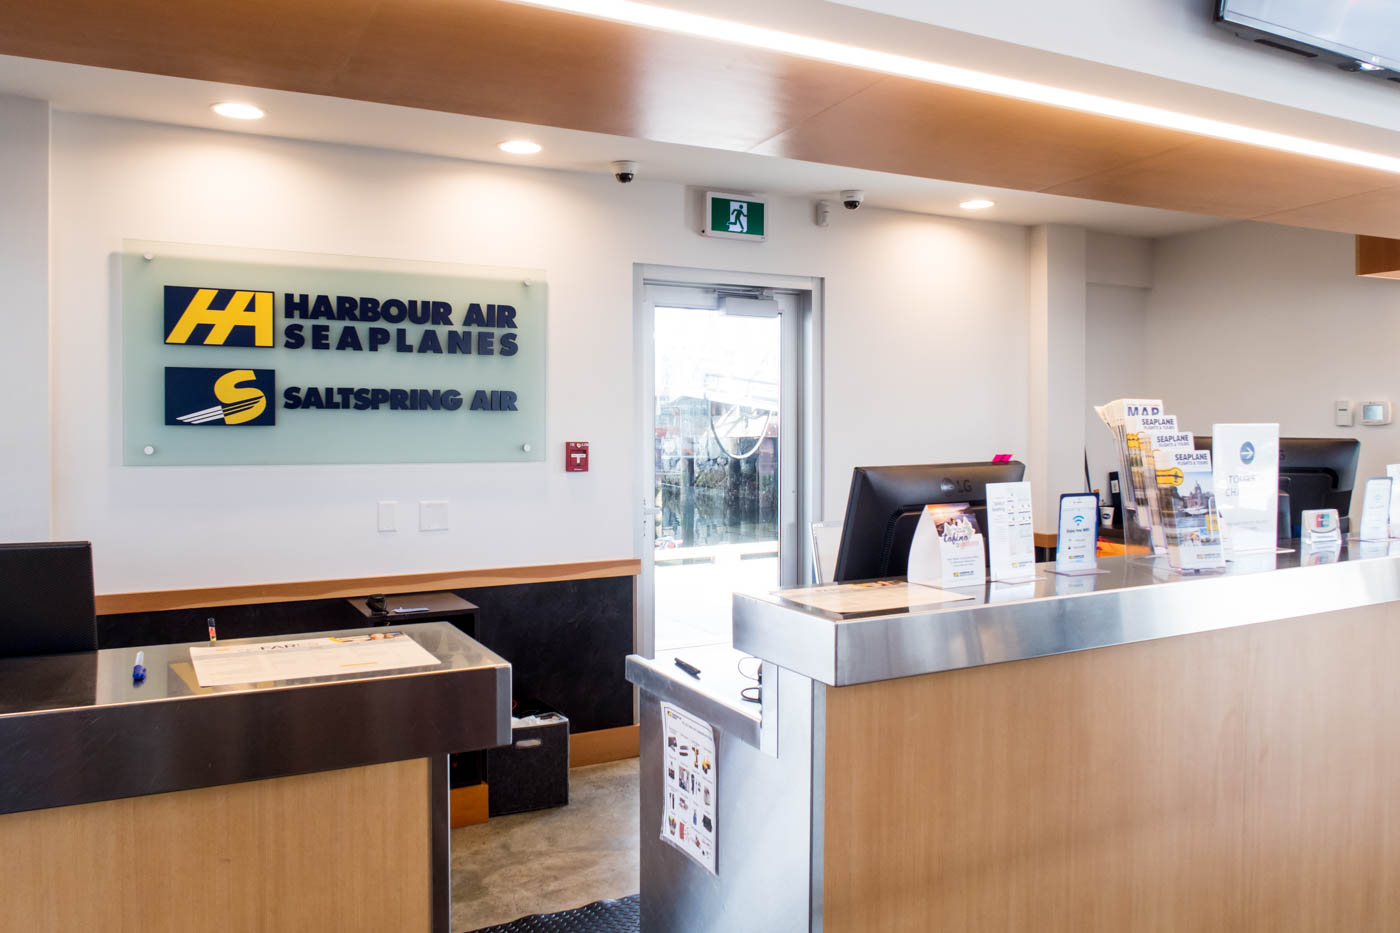 Harbour Air Check-in Counter at Victoria Harbour Airport